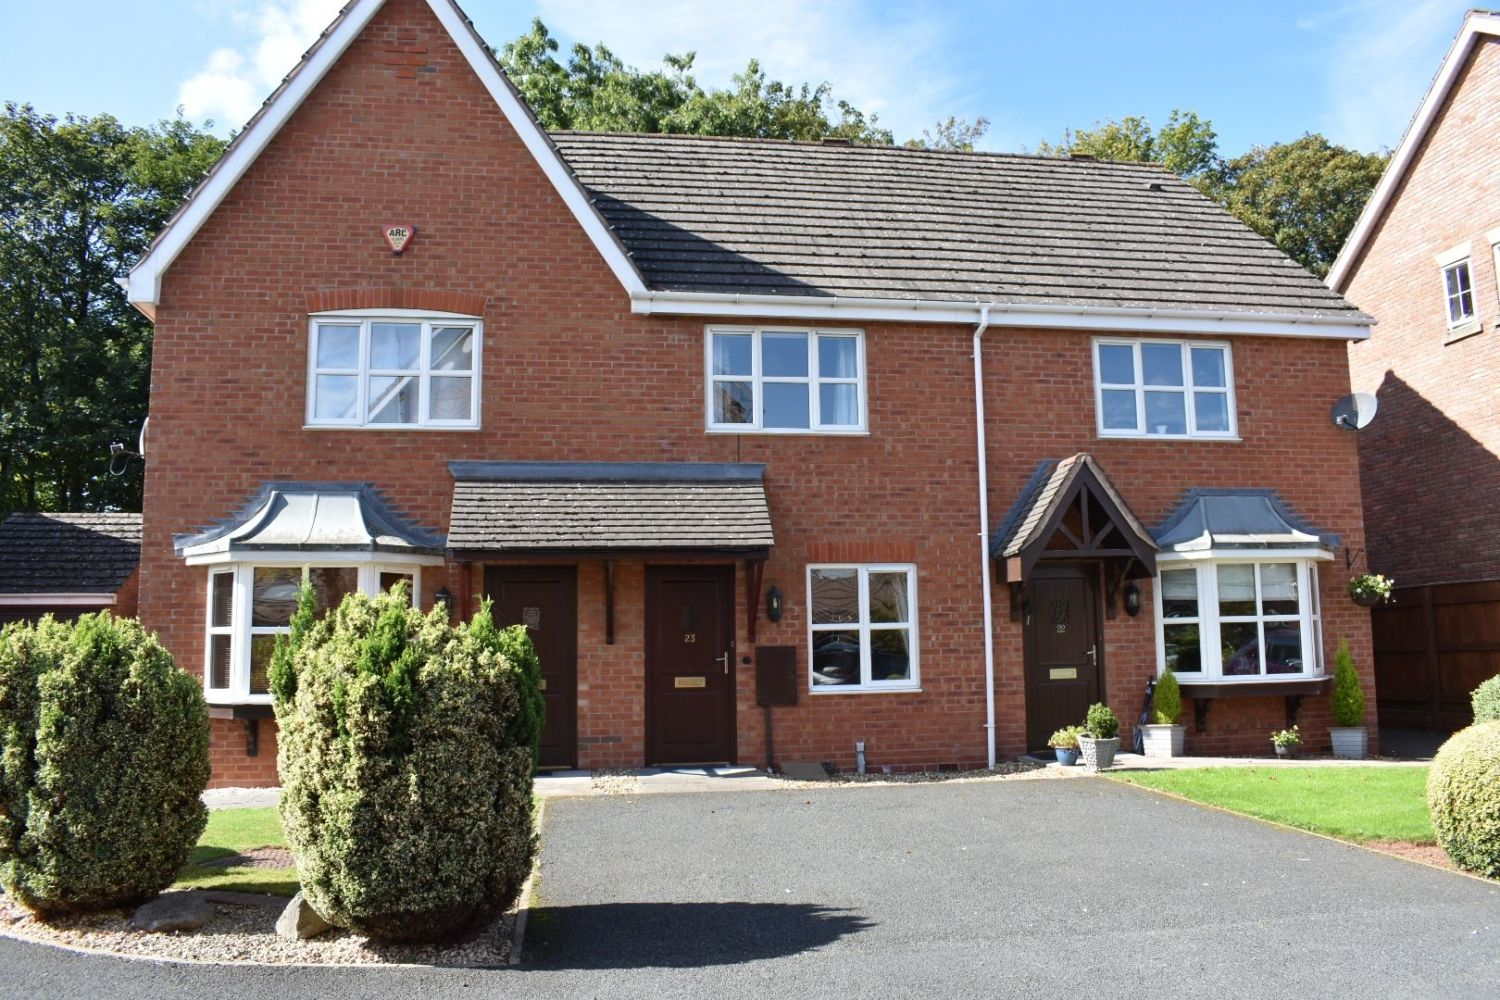 2 bed terraced for sale in Mallow Drive, Woodland Grange - Property Image 1